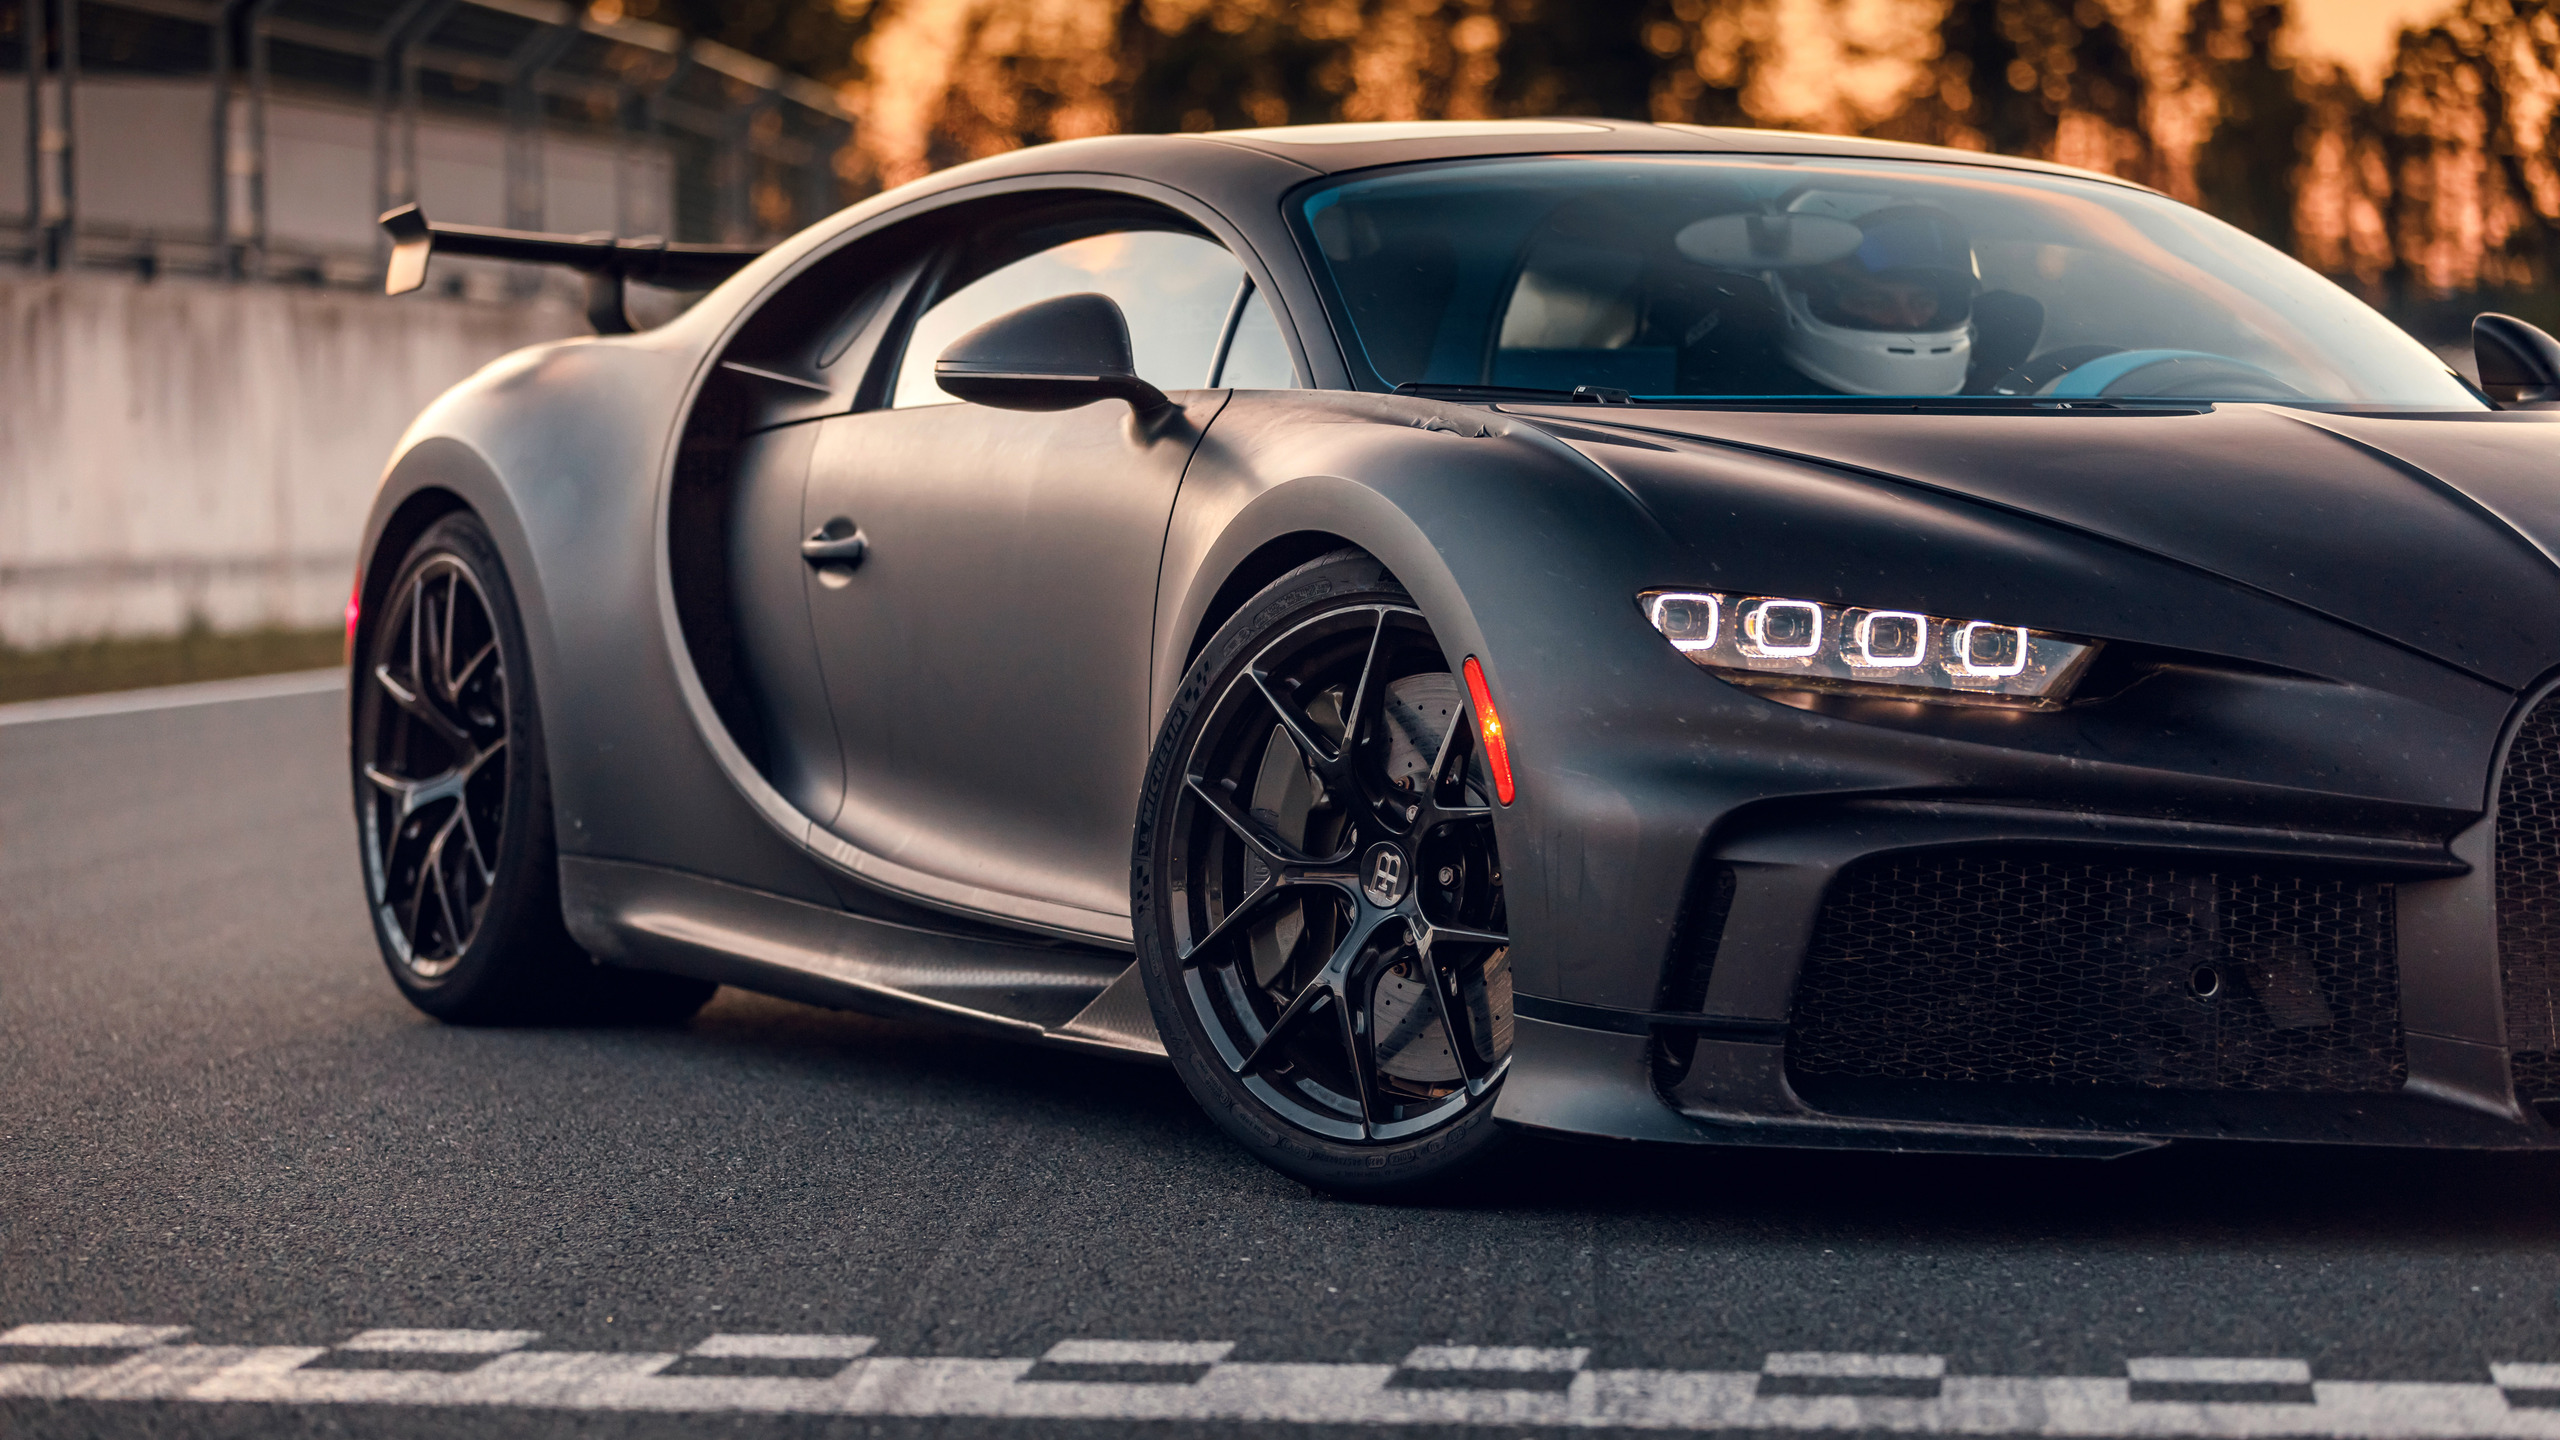 2560x1440 5k Bugatti Chiron Pur Sport 1440p Resolution Hd 4k Wallpapers Images Backgrounds Photos And Pictures